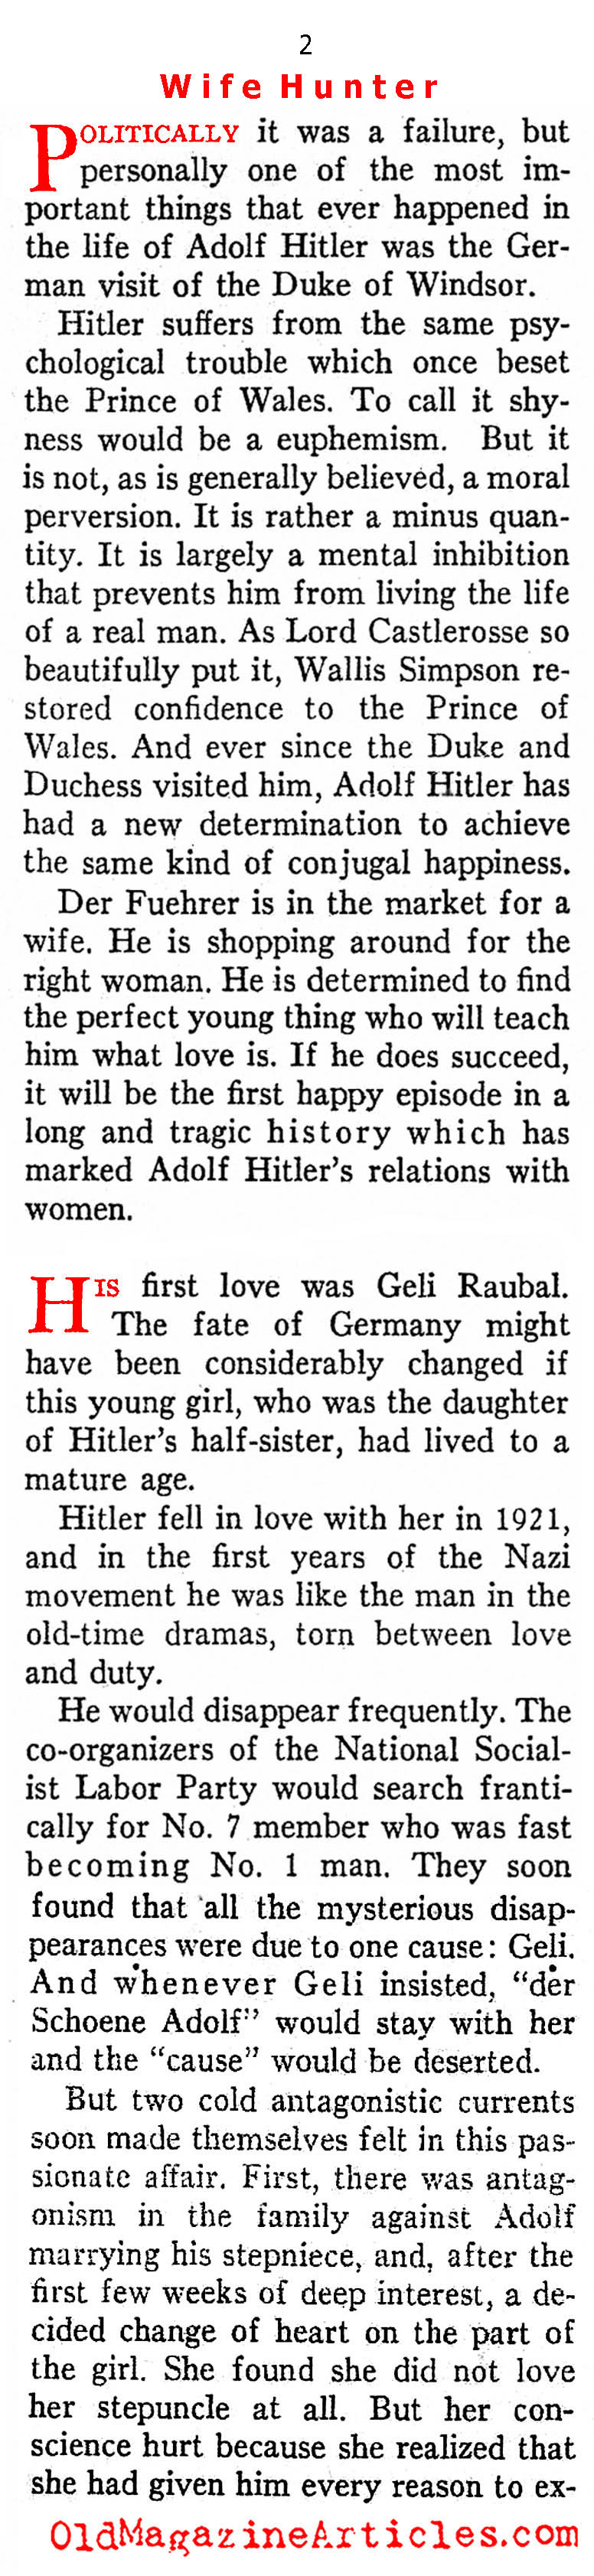 Hitler Goes Wife Shopping (Ken Magazine, 1938)